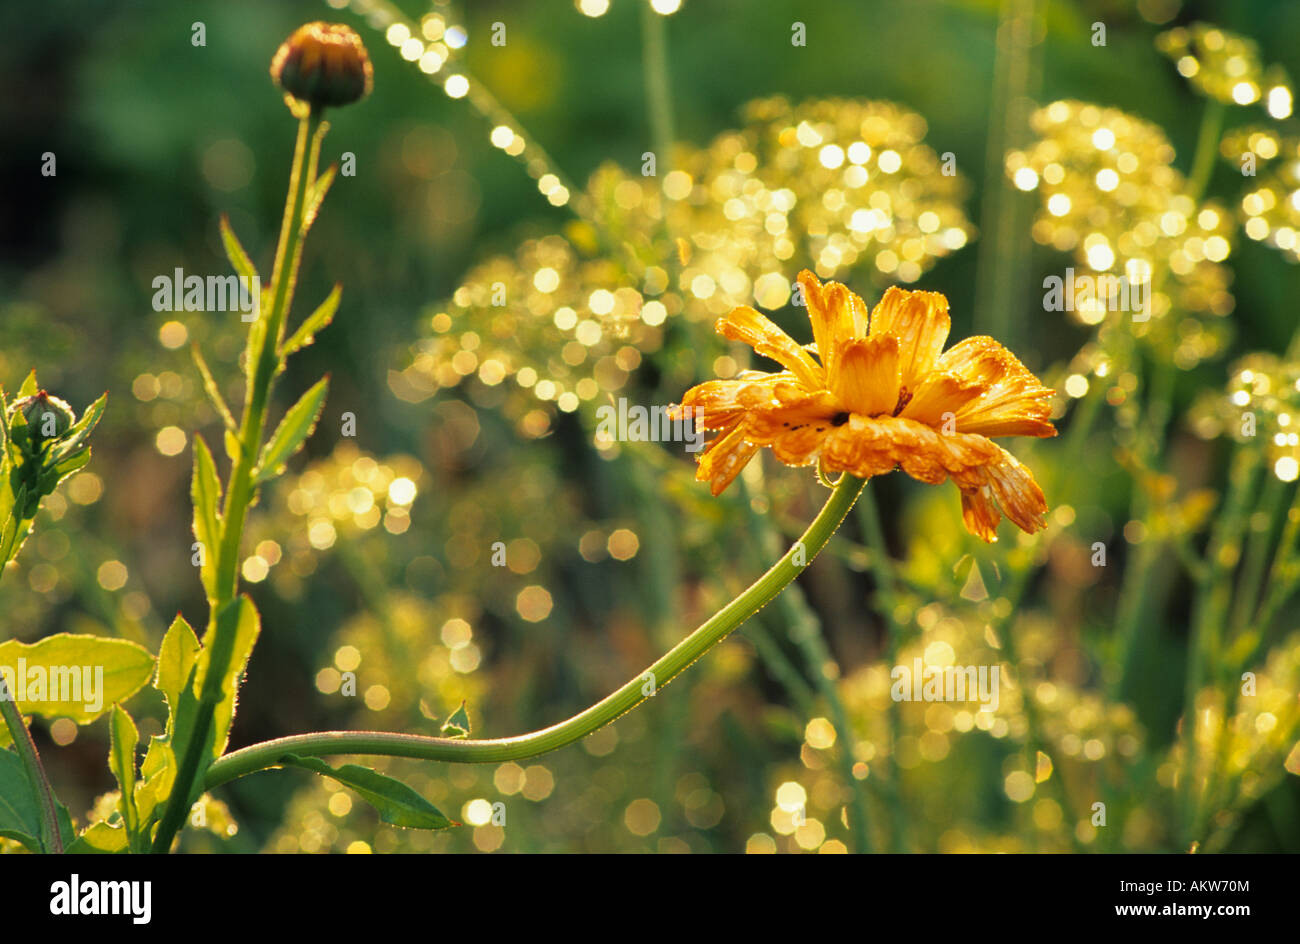 French Marigold and Parsley gone to seed. - Stock Image